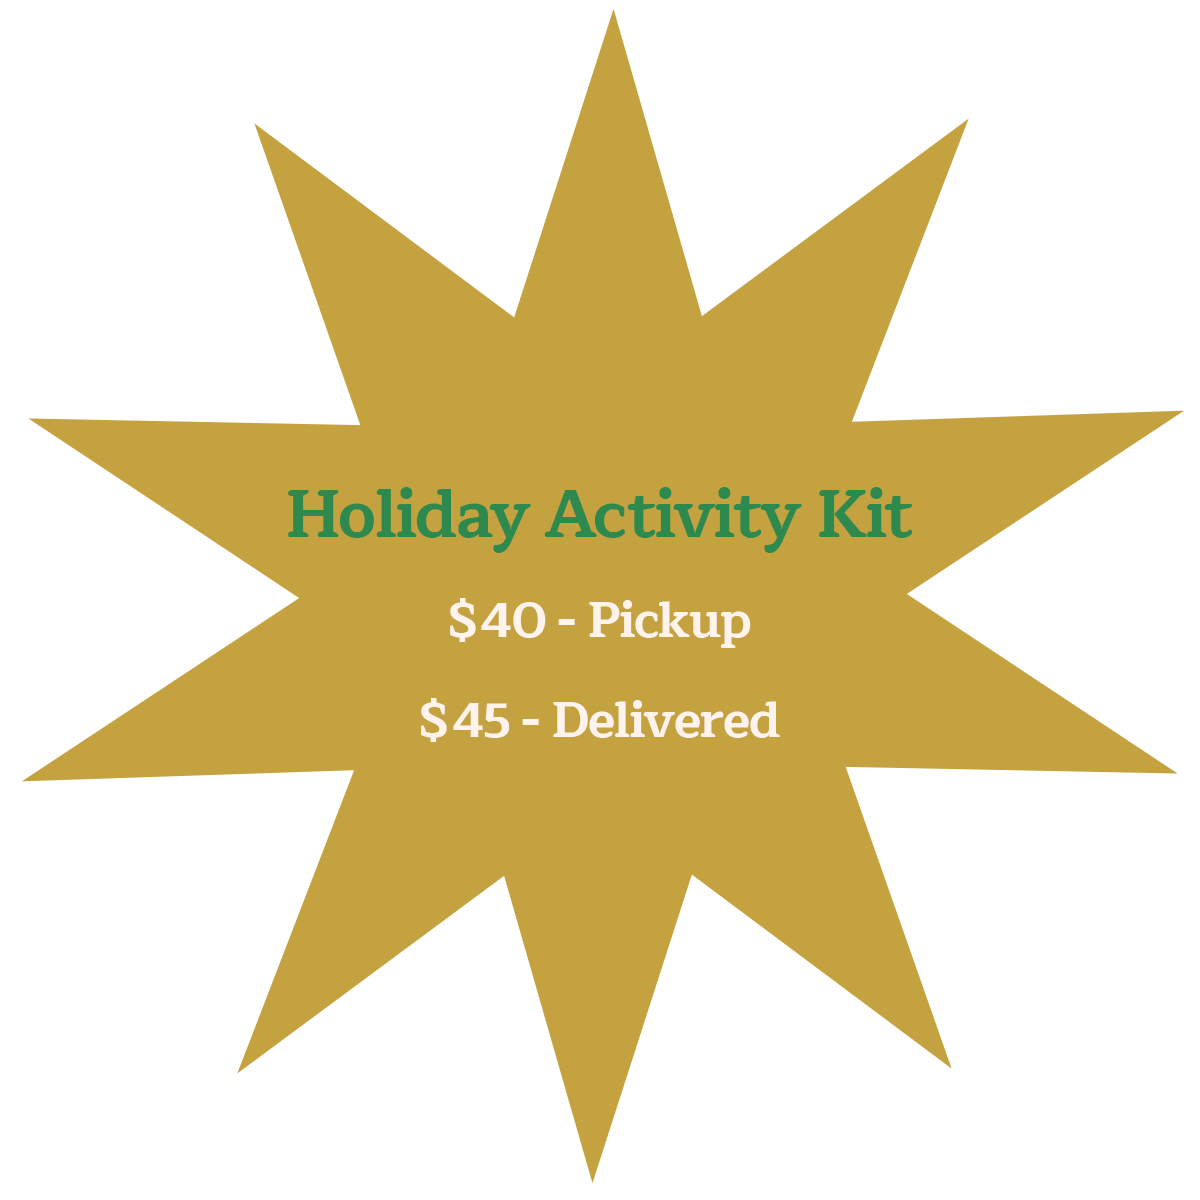 Holiday Activity Kit